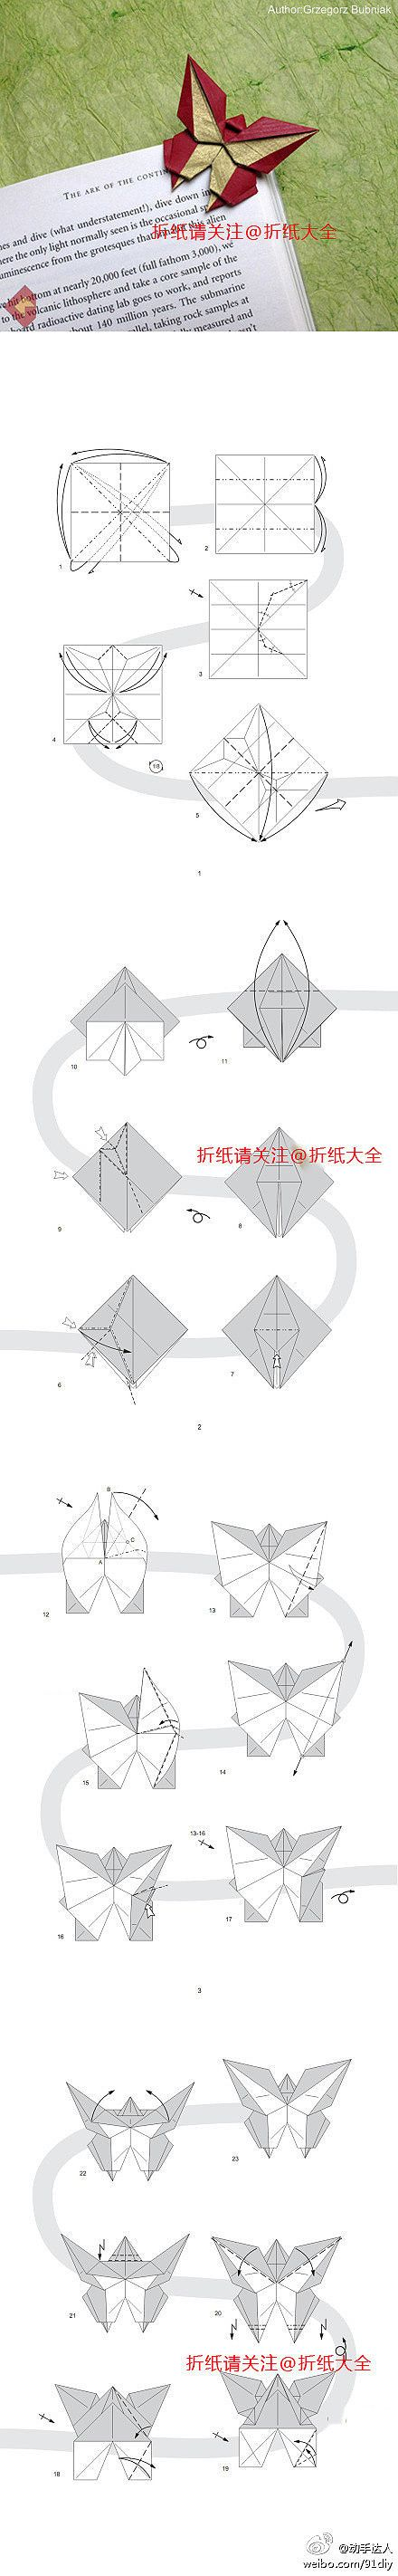 39 Best Emma Images On Pinterest Elves Carnivals And Costume Ideas Origami Butterfly Diagram Bookmark Diagrams Learn How To An Origamilearn Fold This Amazing With Step By